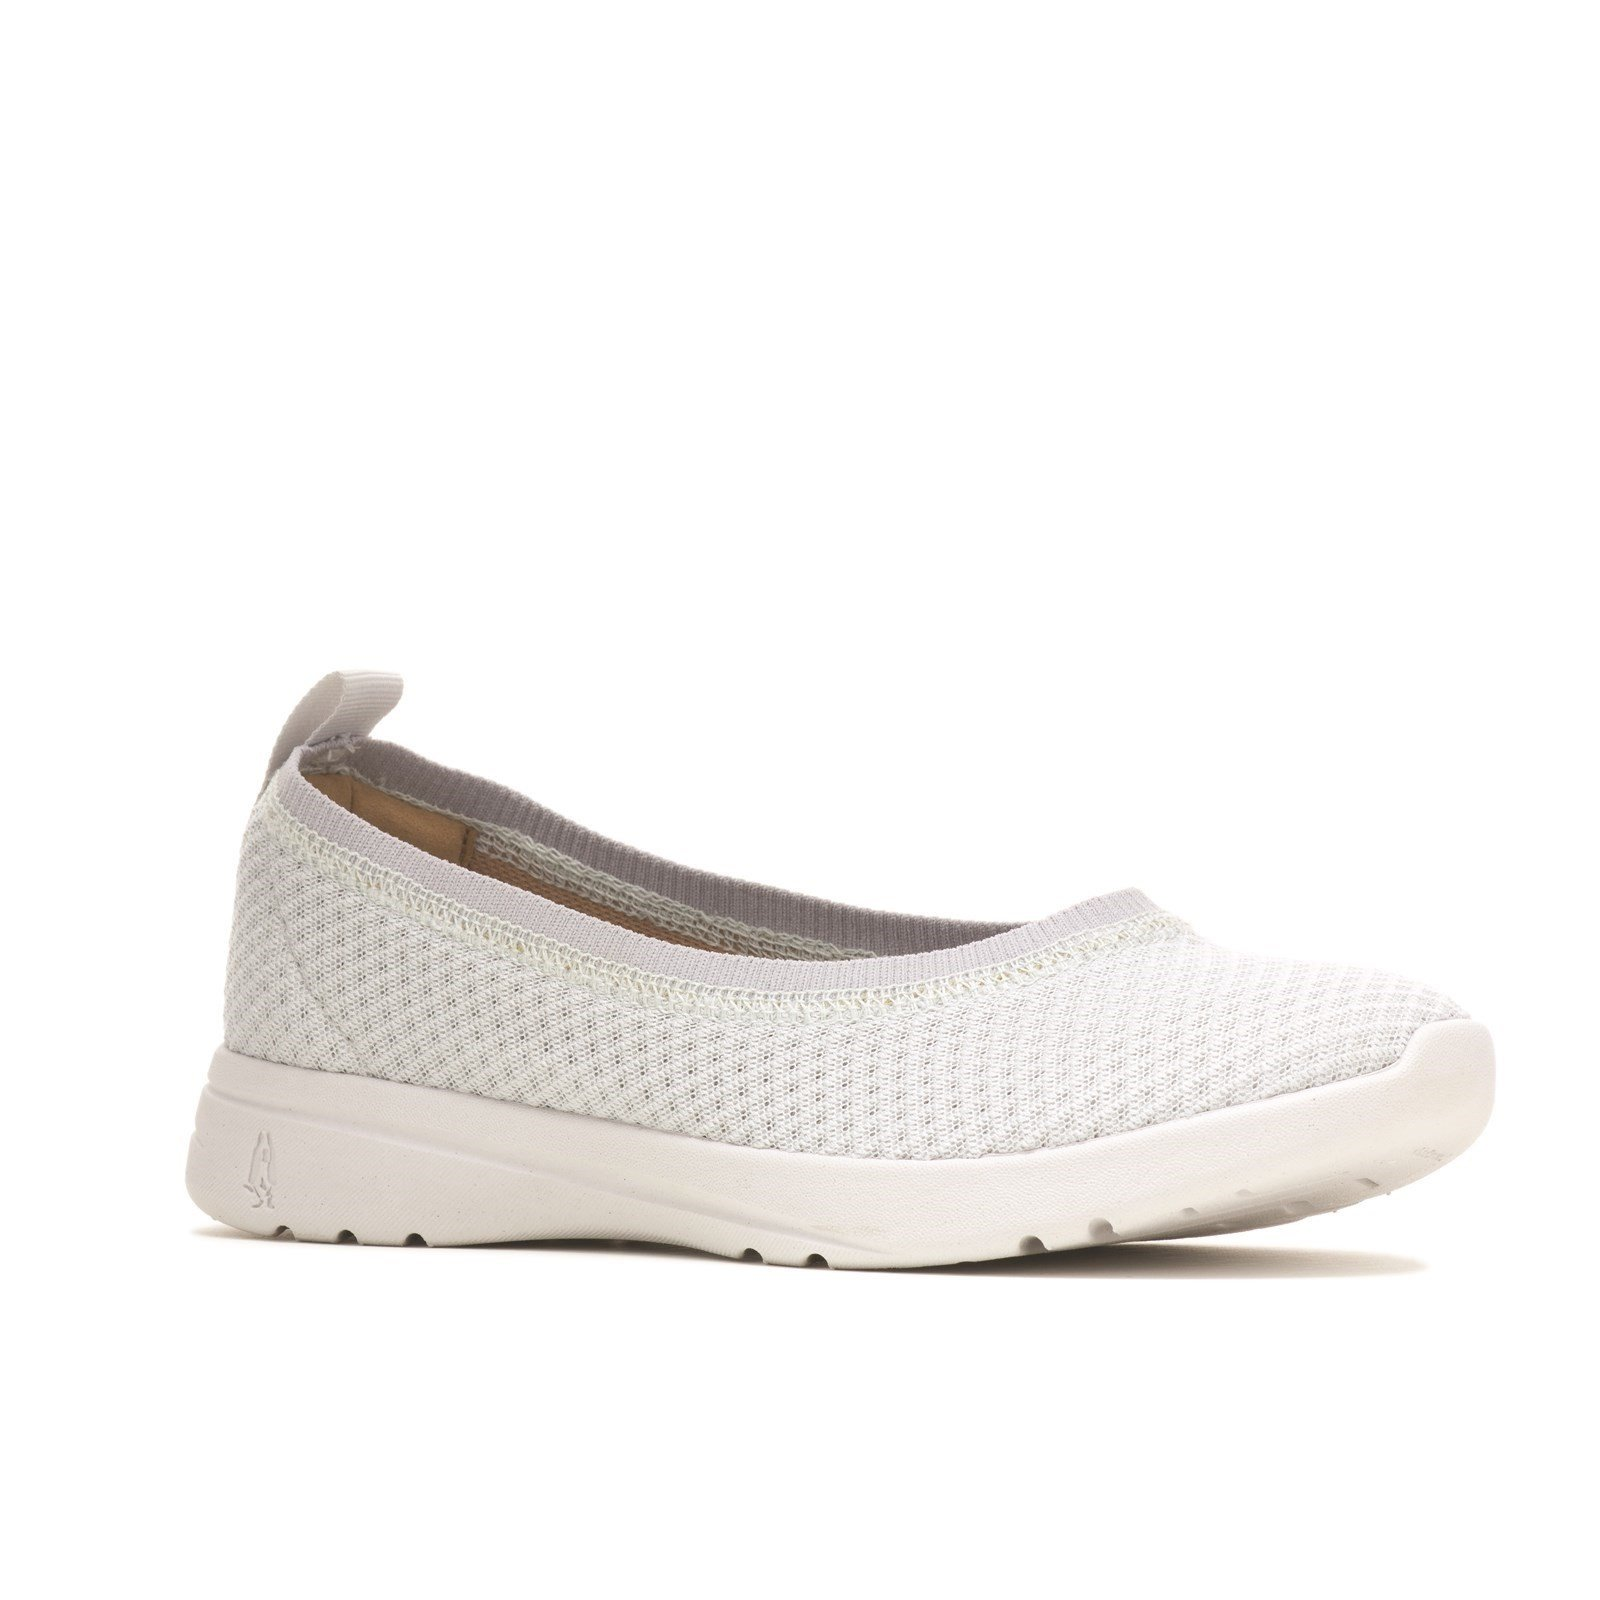 Hush Puppies Women's Good Ballet Slip On Shoes Various Colours 32918 - Grey 3